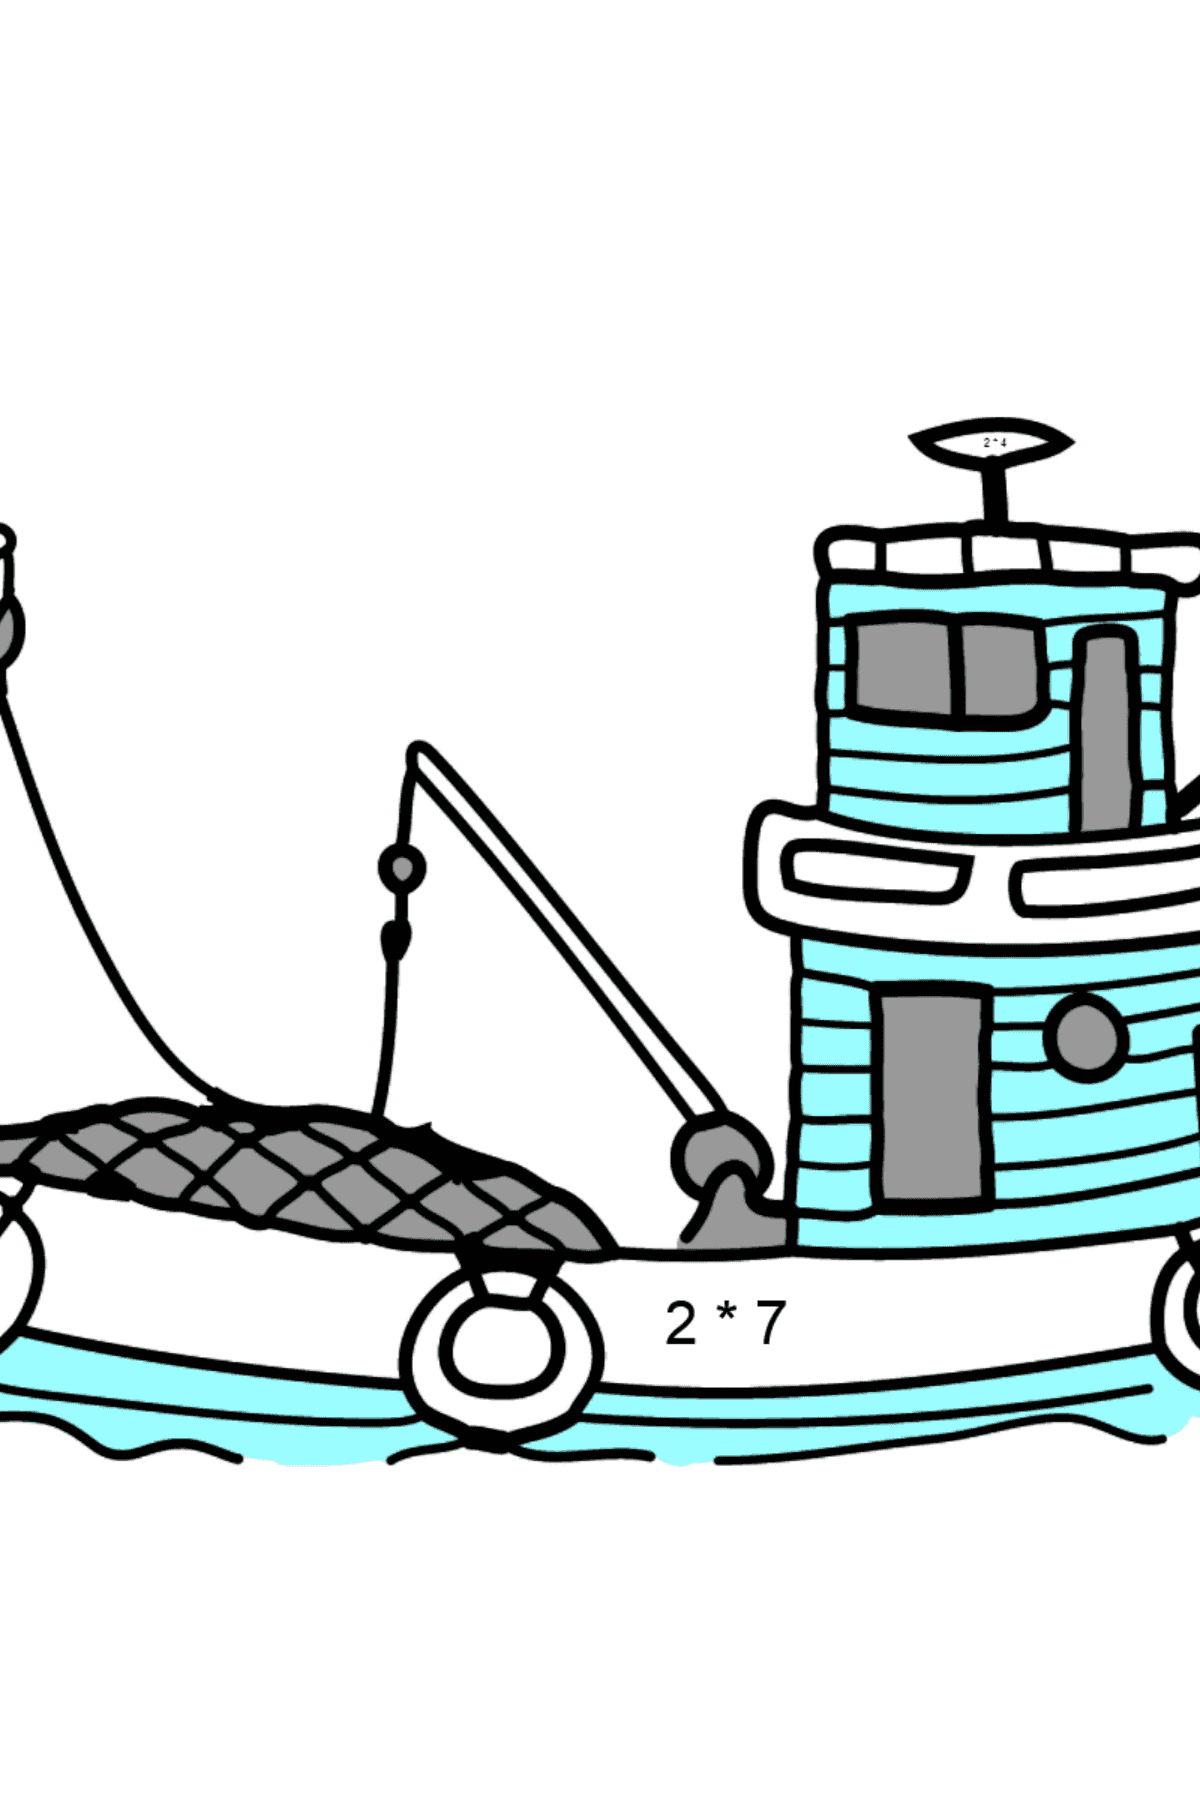 Coloring Page - A Fishing Boat - Math Coloring - Multiplication for Kids